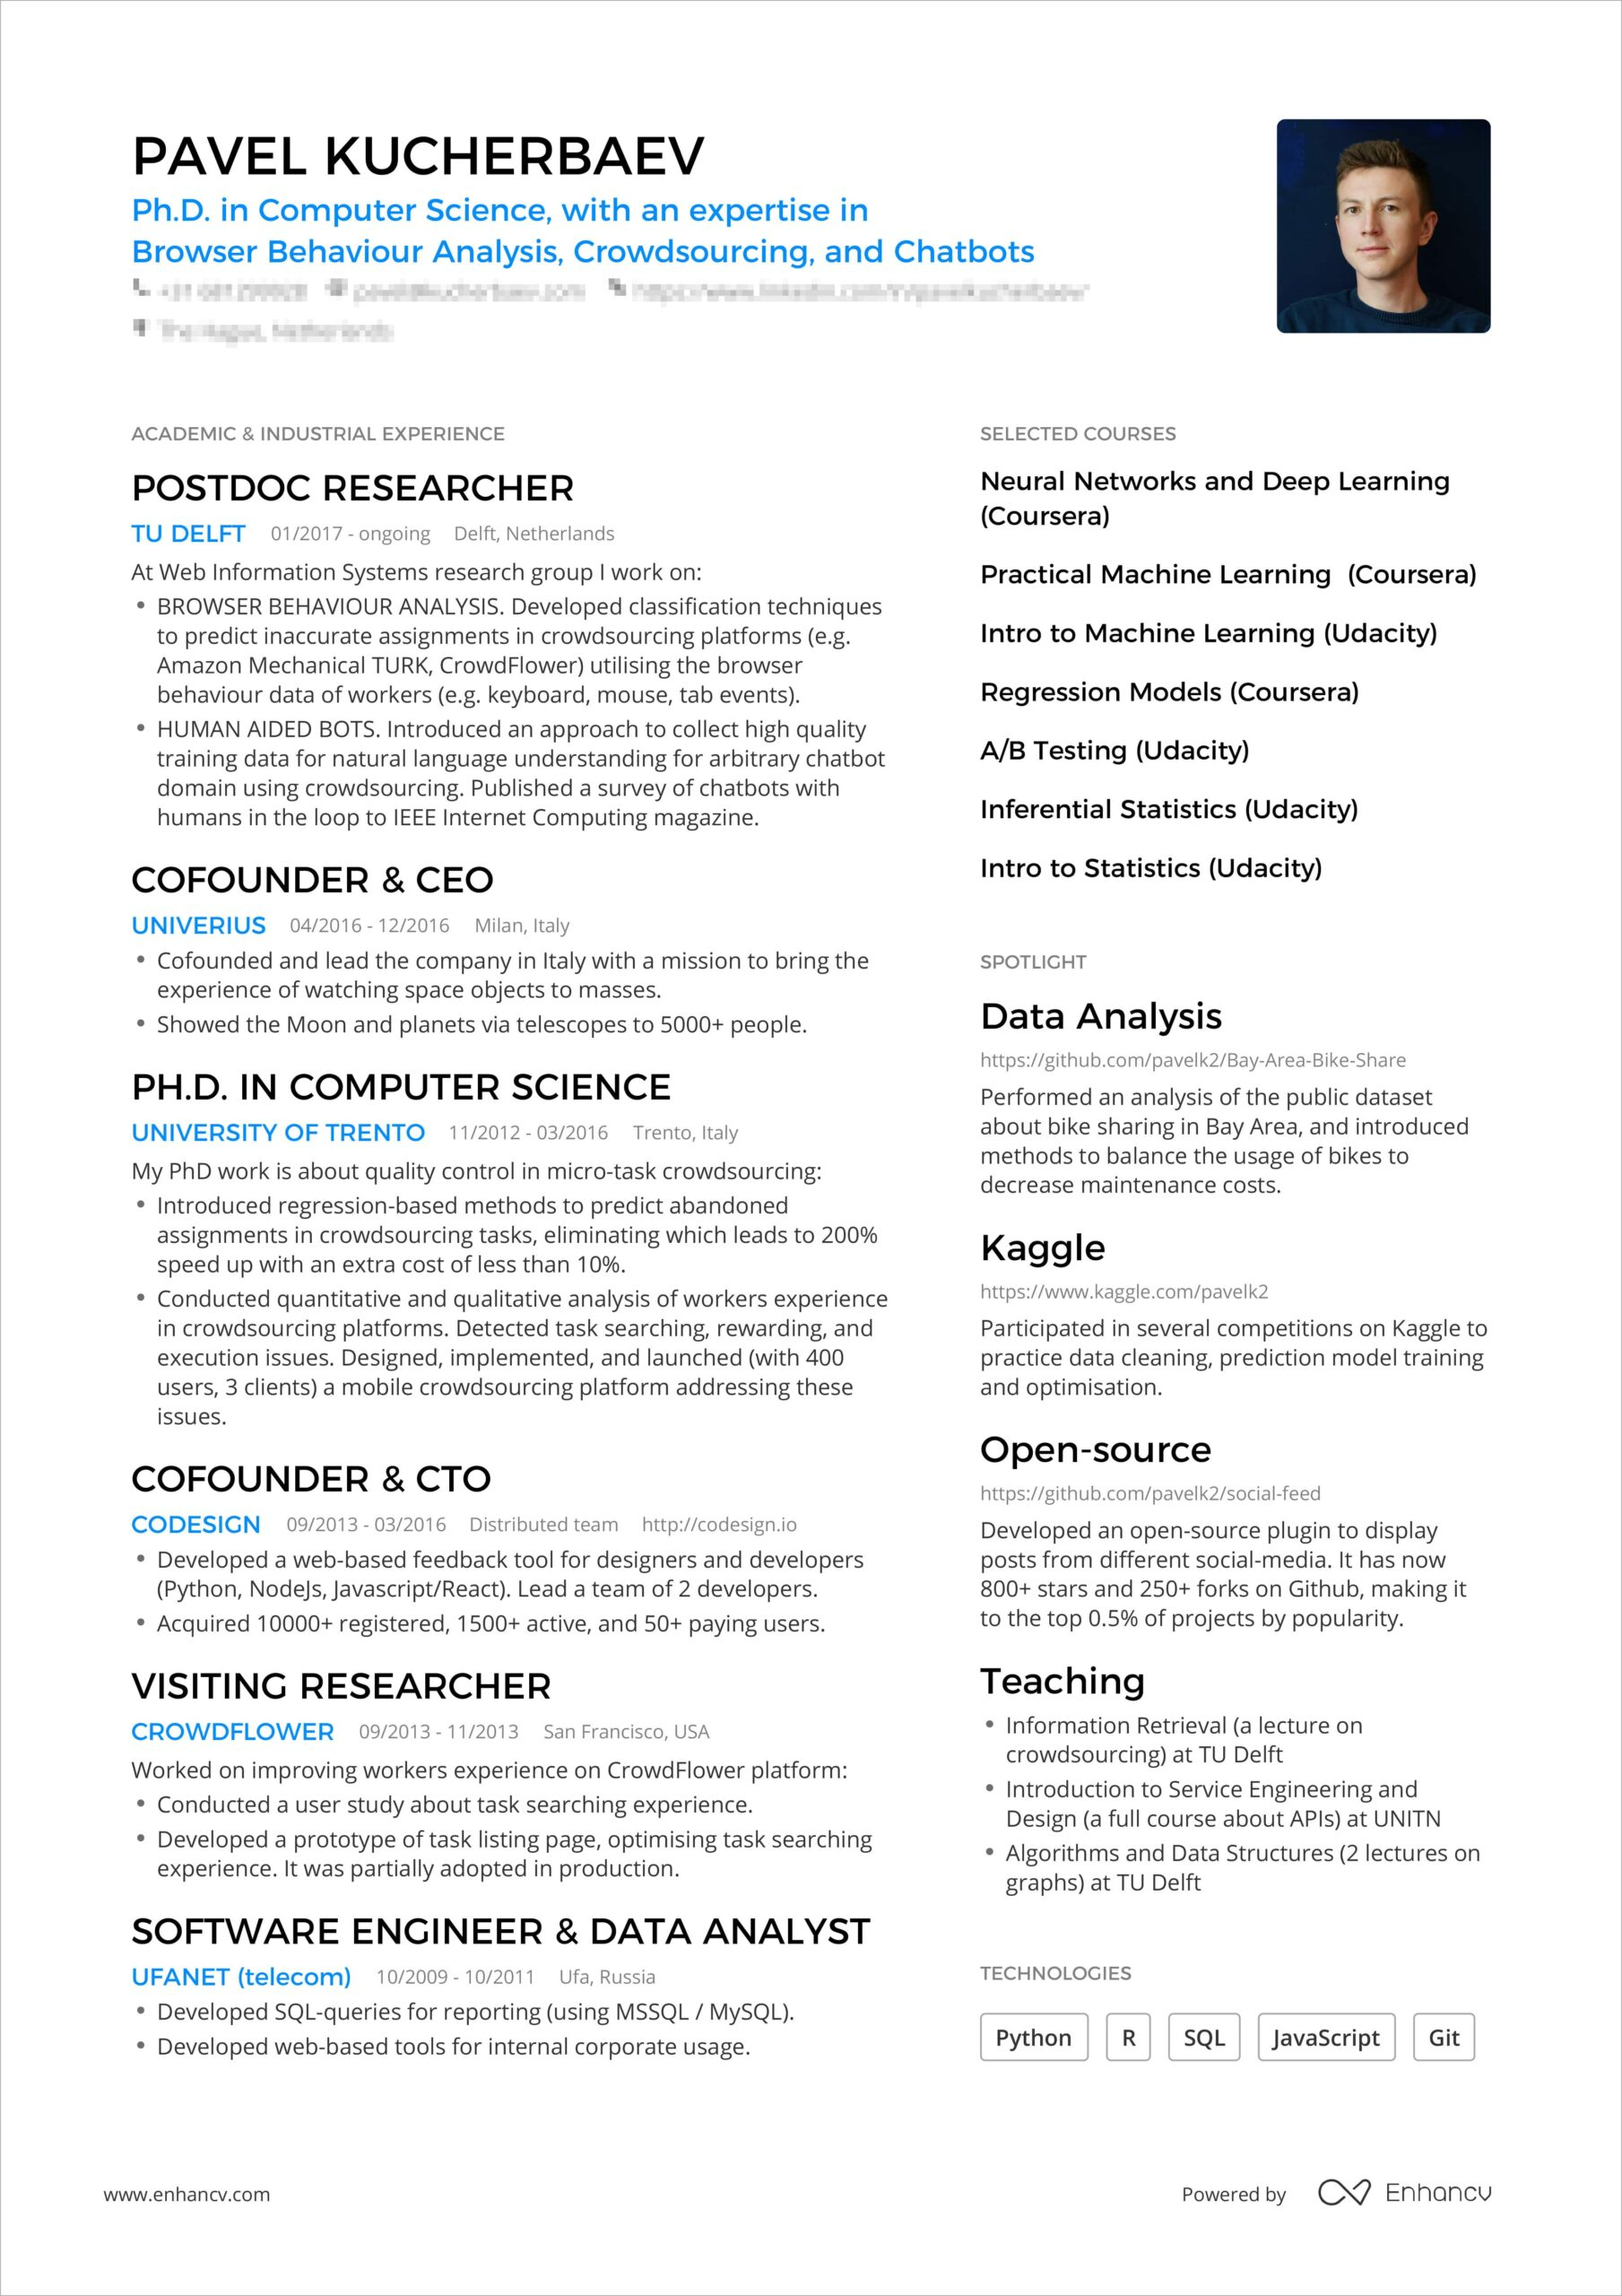 powerful one resume examples you can use now best pavel booking bordered min clinical Resume Best One Page Resume Examples